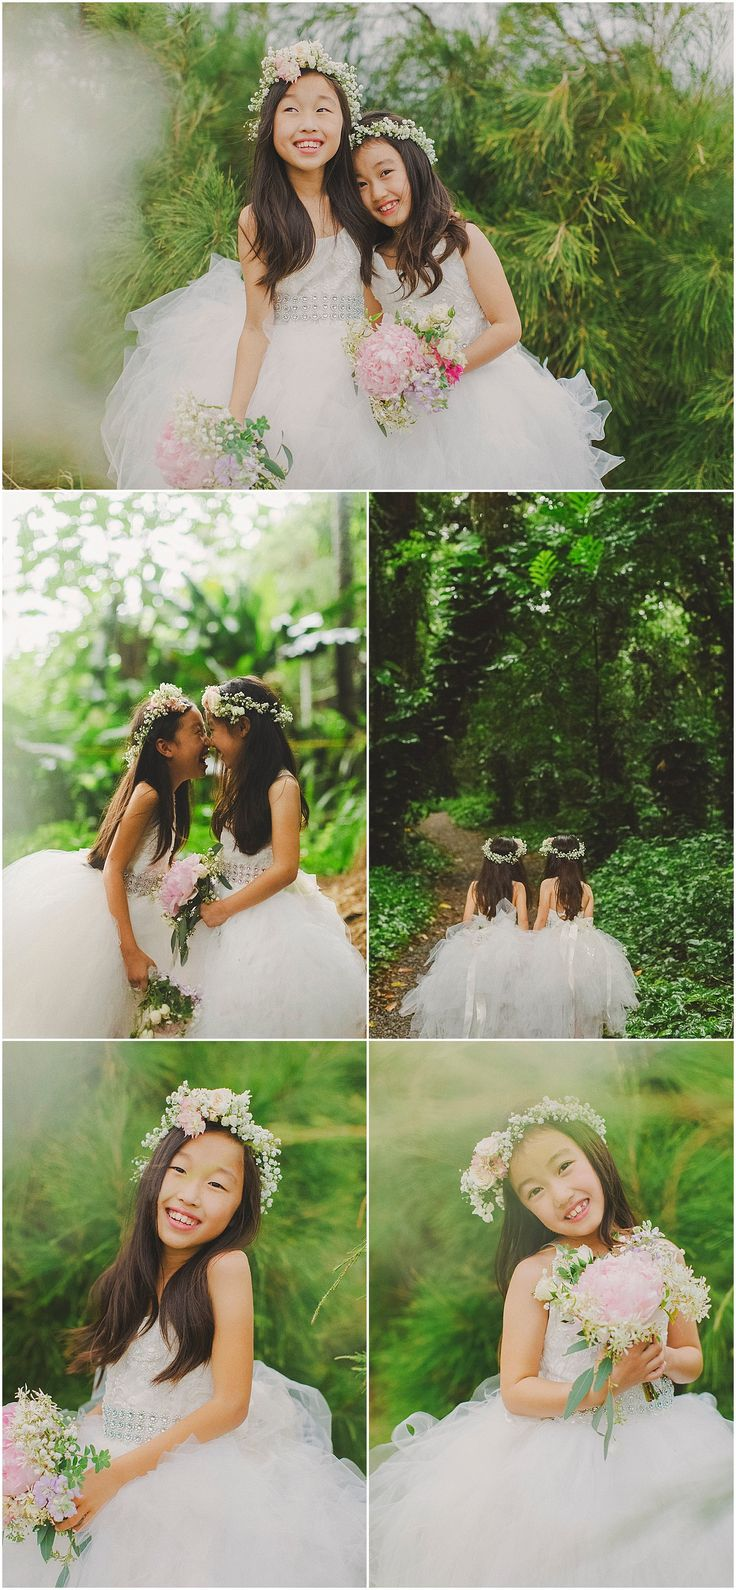 46++ What to say at a wedding vow renewal information